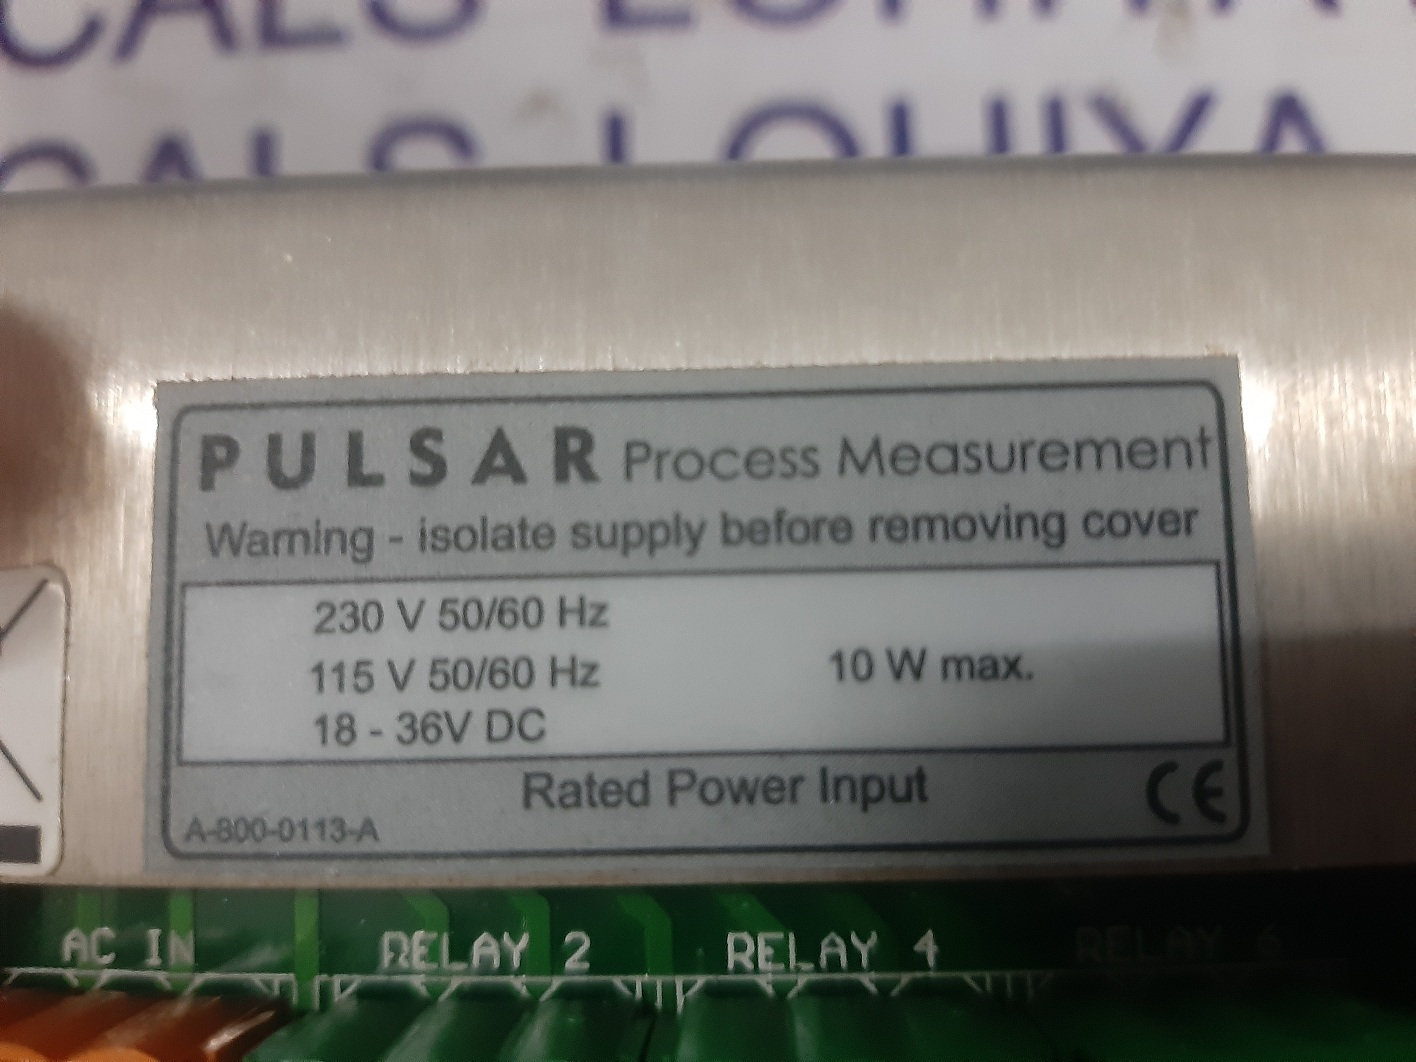 PULSAR PROCESS MEASUREMENT HMI A-800-0113-A